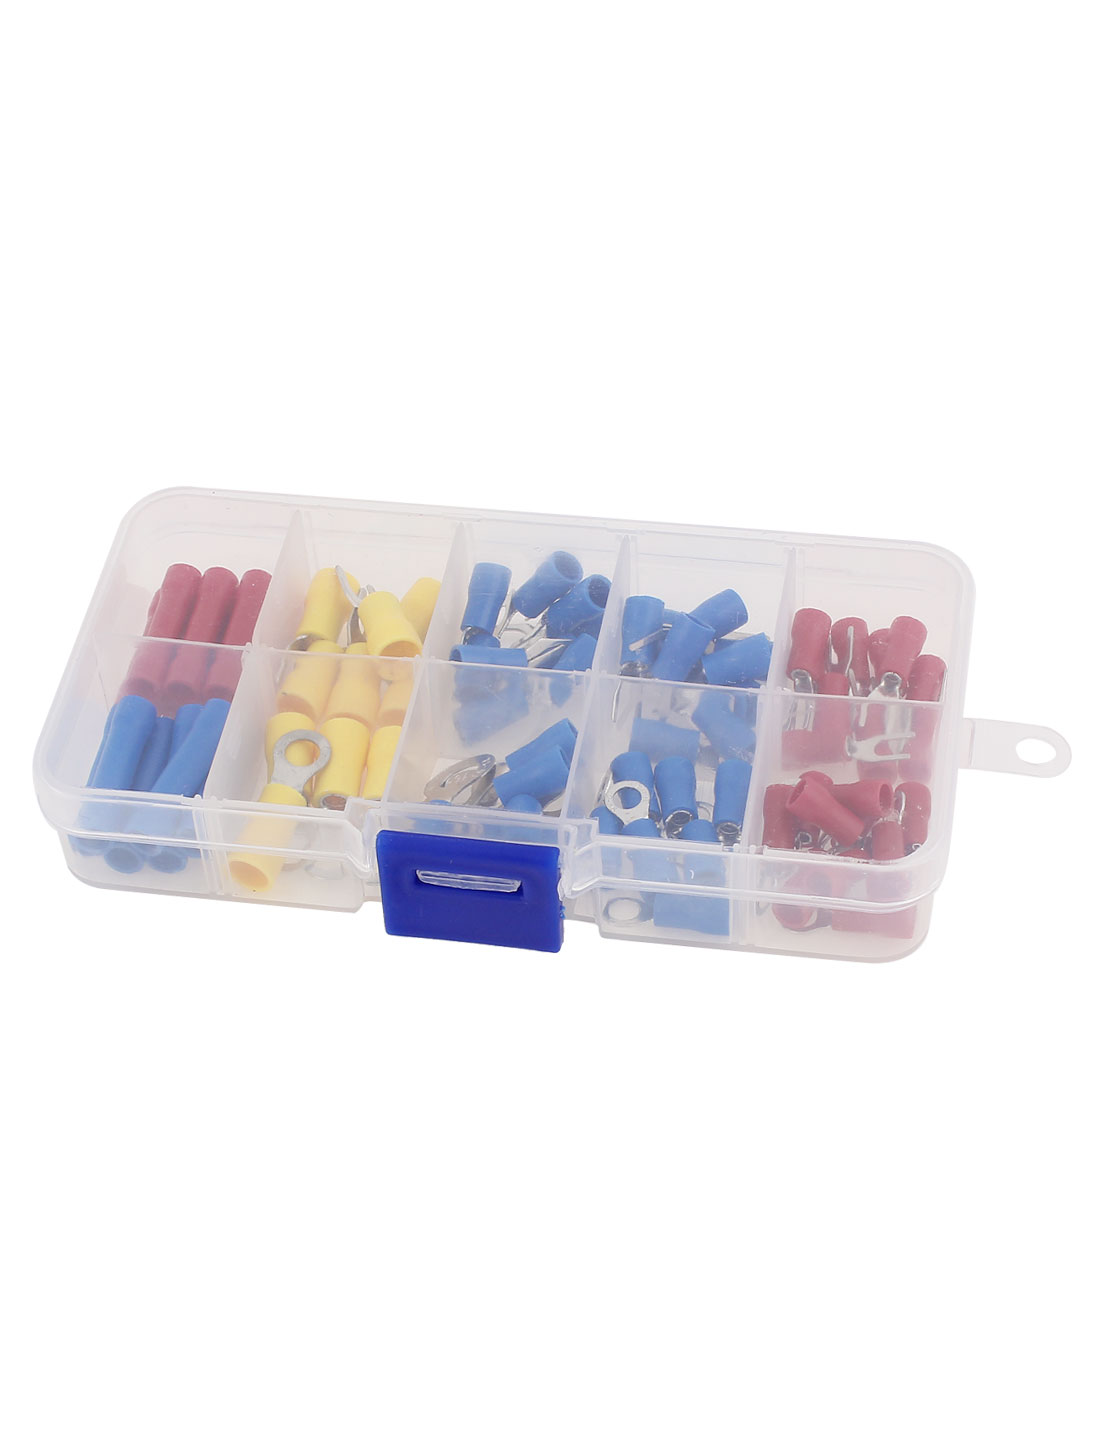 75Pcs Insulated Fork Ring Wire Connector Crimp Terminal Assortment Kit